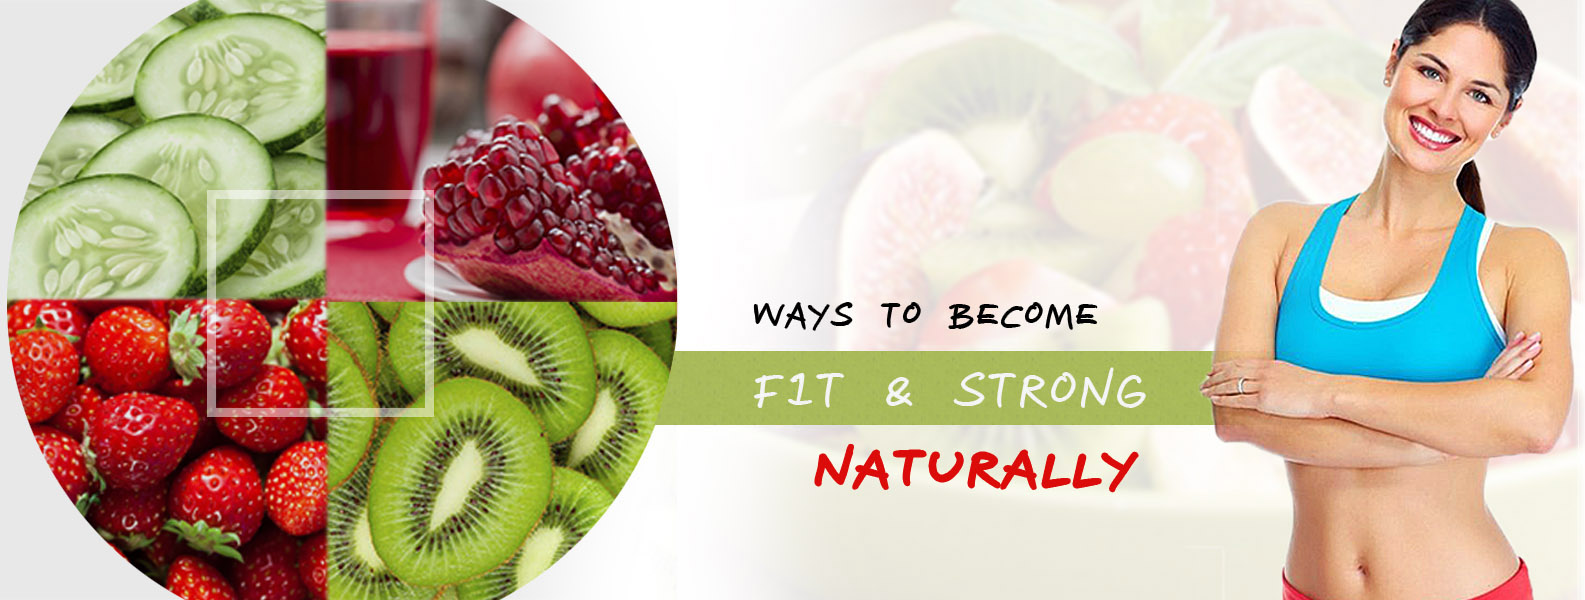 Ways to become Fit and Strong Naturally